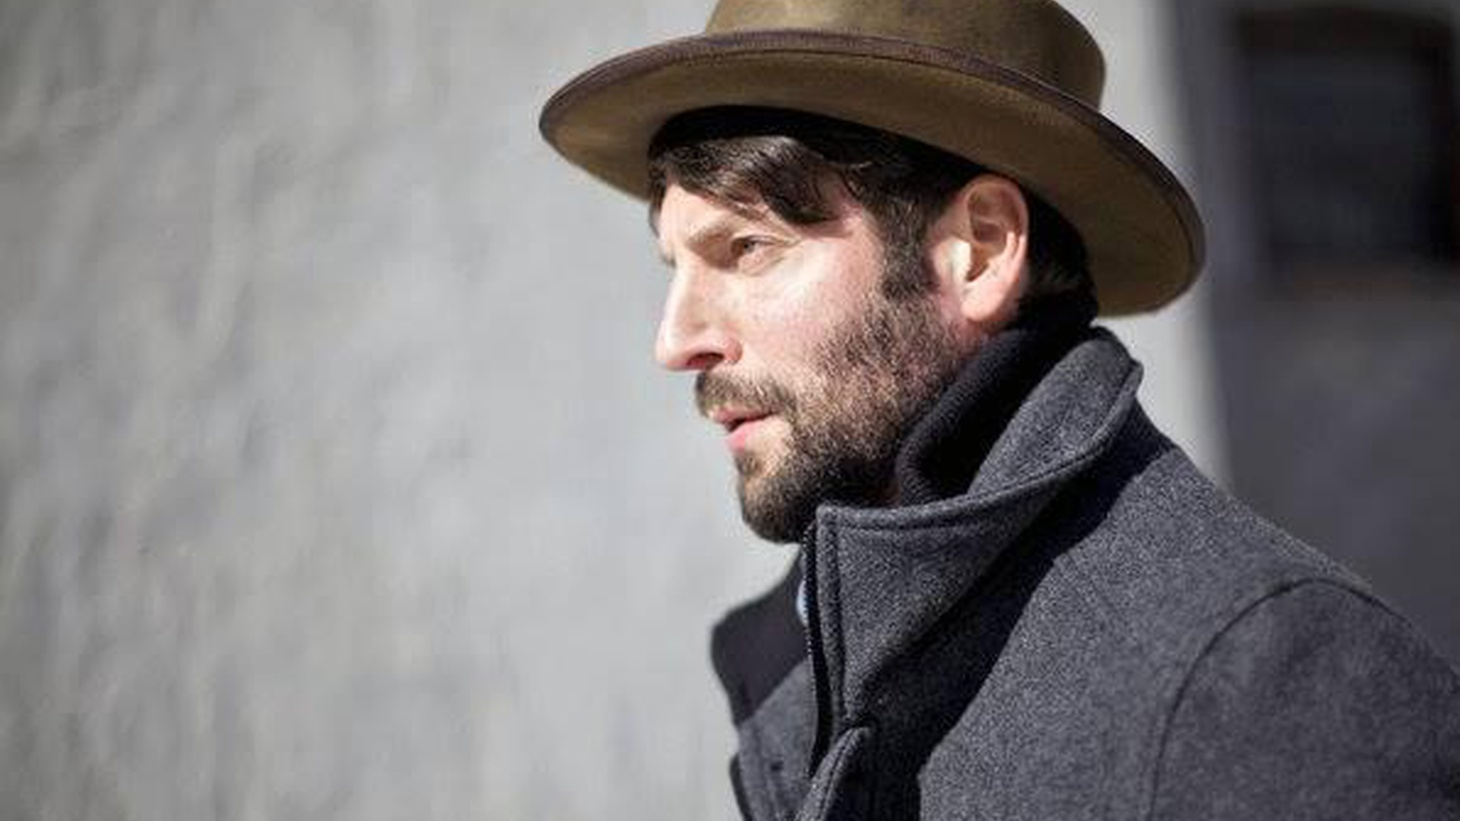 Ray LaMontagne really sounds like he's having fun on his new Dan Auerbach-produced album. The 10 songs on his fifth studio release reflect the joy of songwriting.